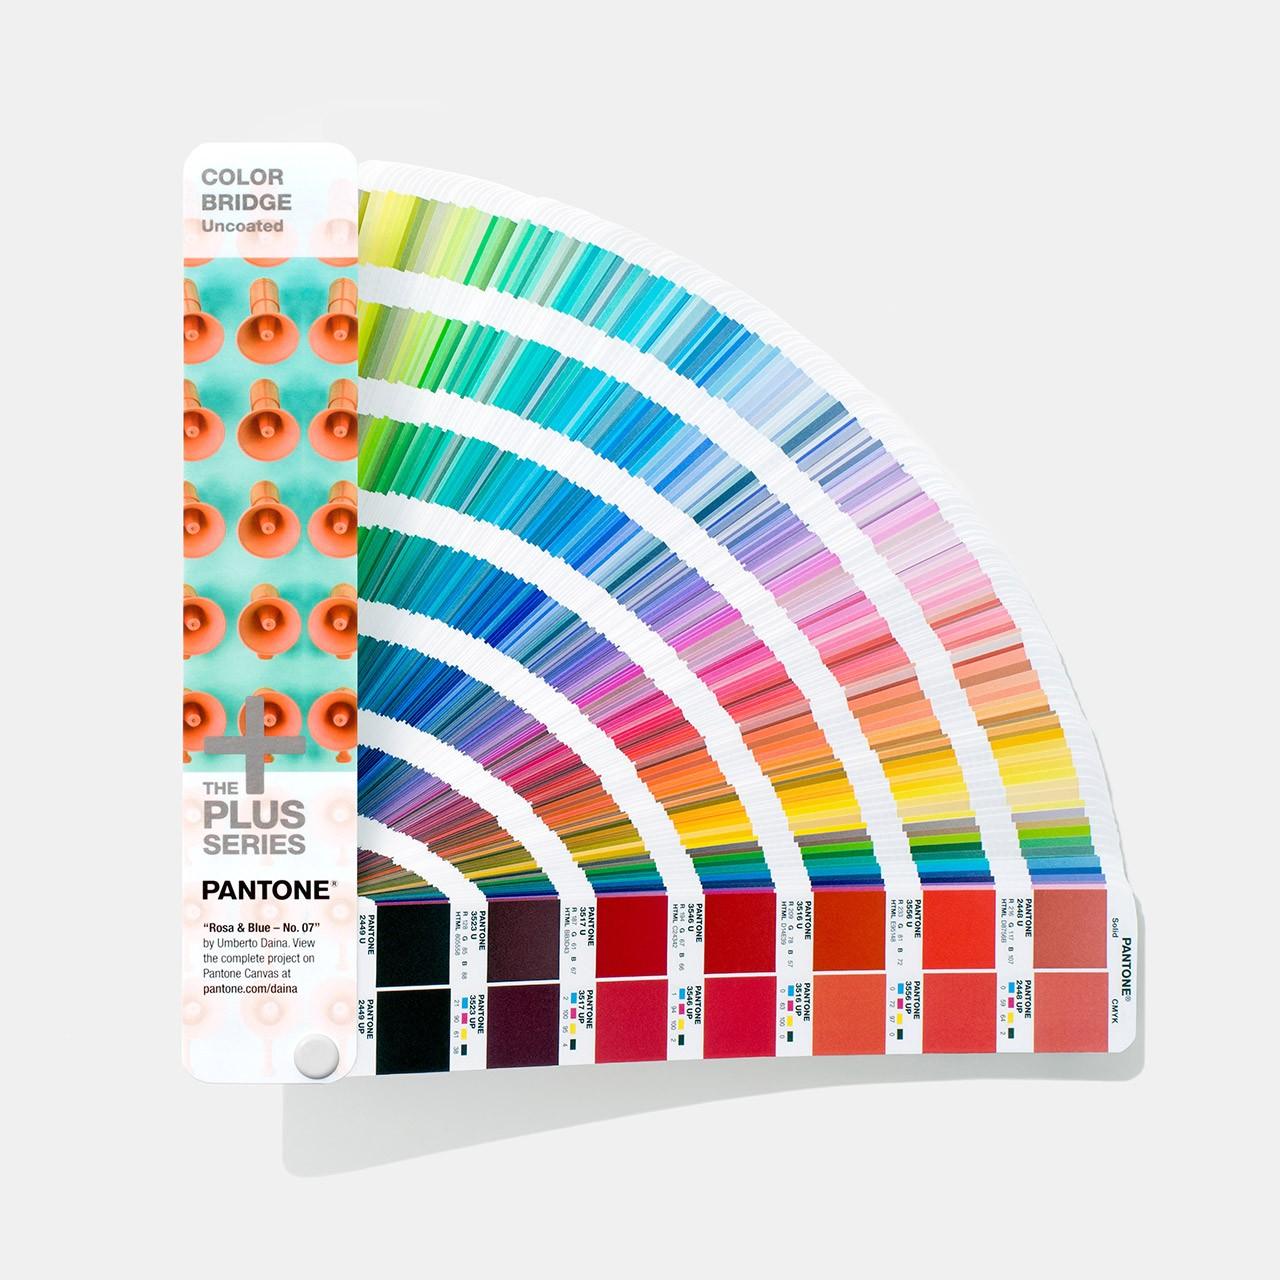 gg6104n - Pantone Color Bridge Uncoated